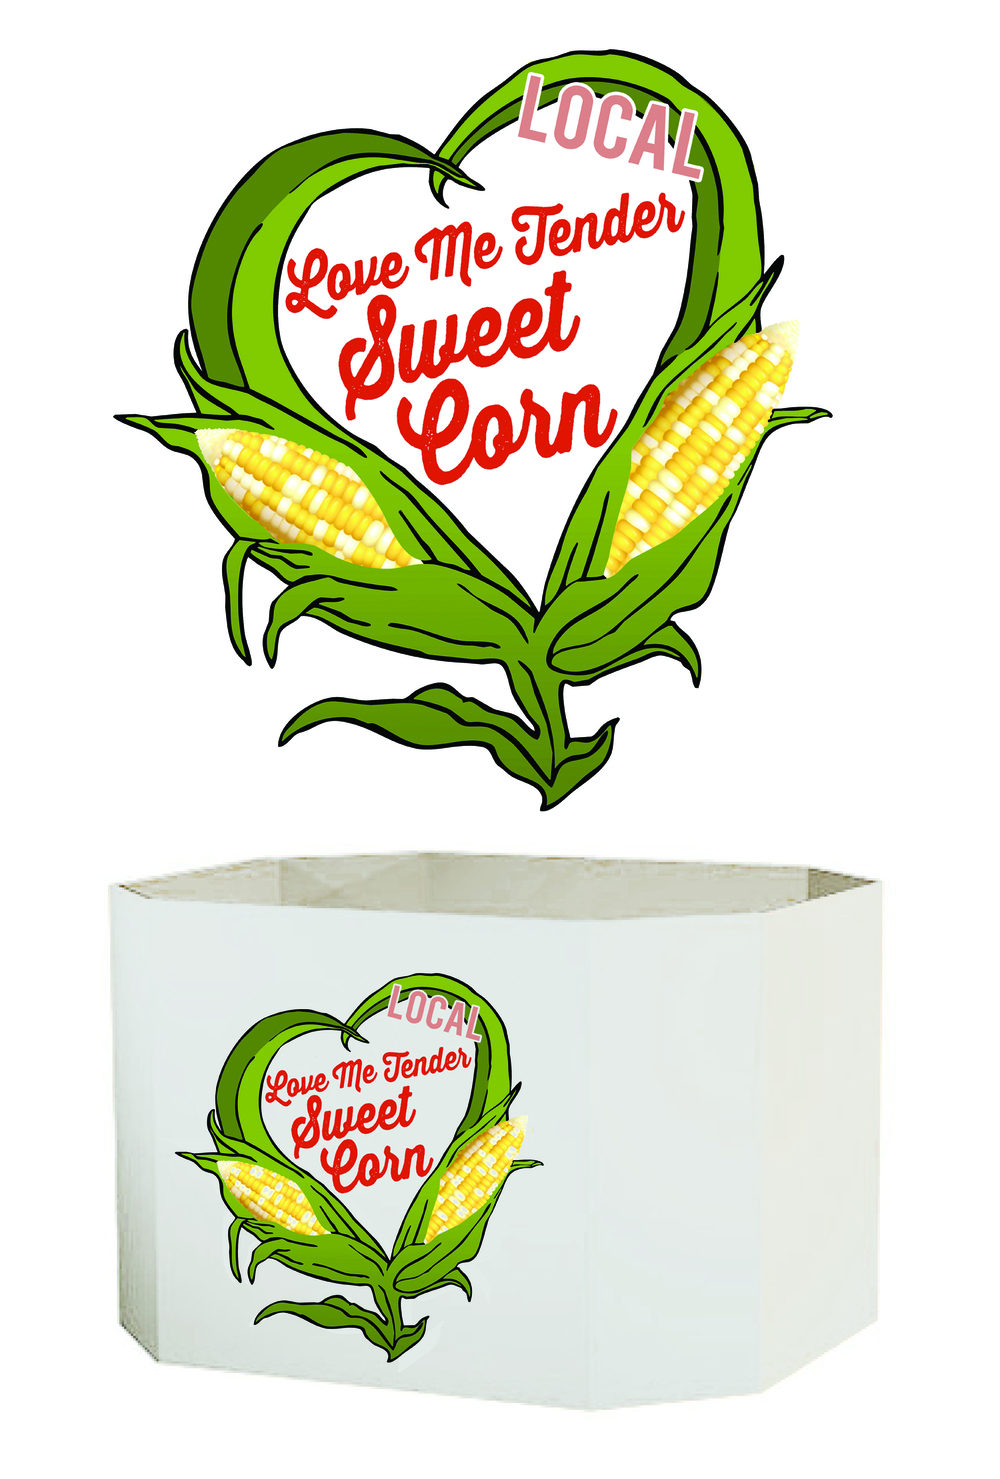 Love Me Tender Sweet Corn